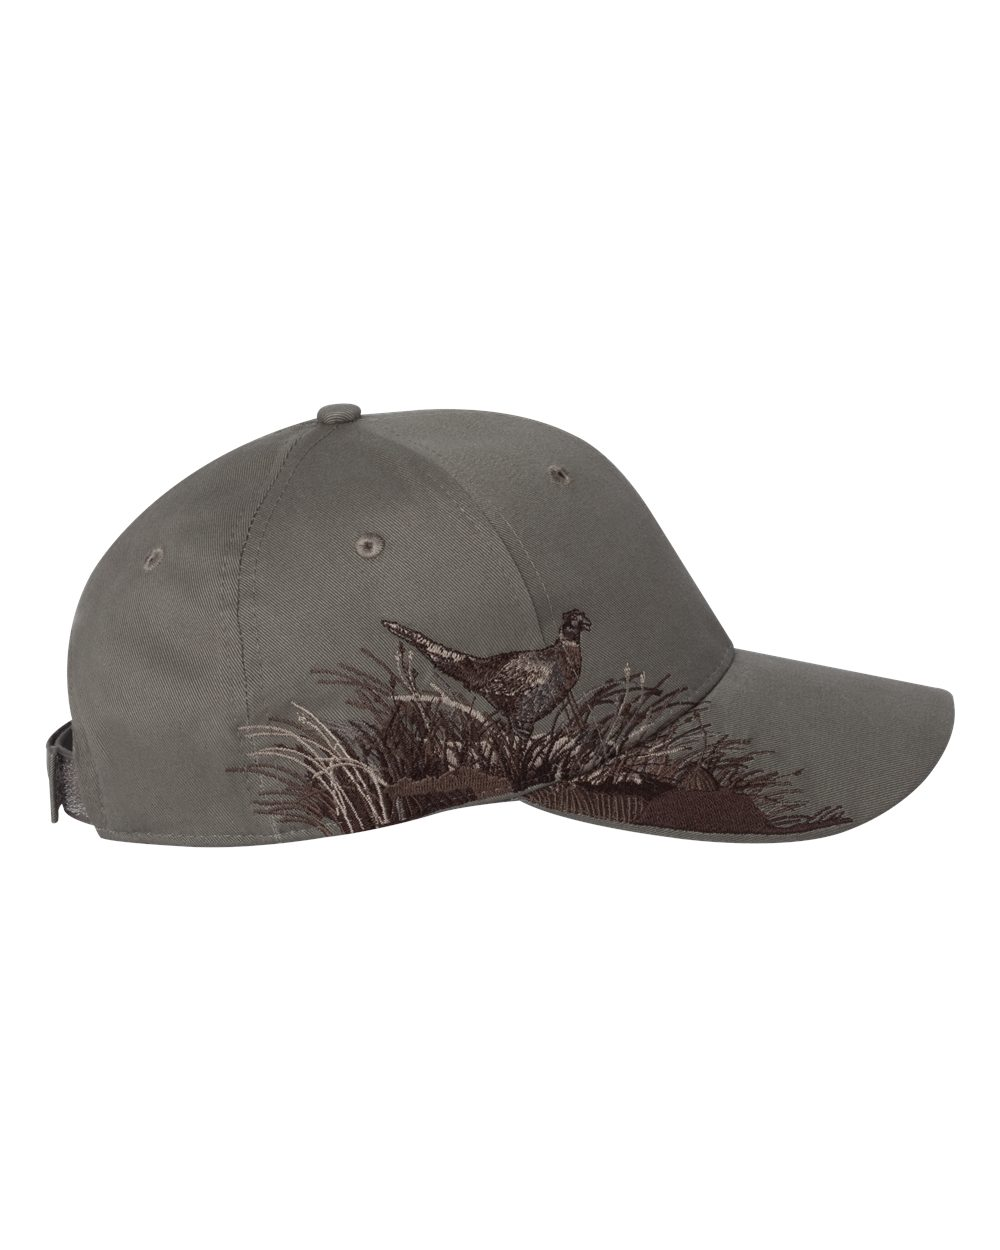 DRI DUCK Wildlife Series Pheasant Cap - 3261